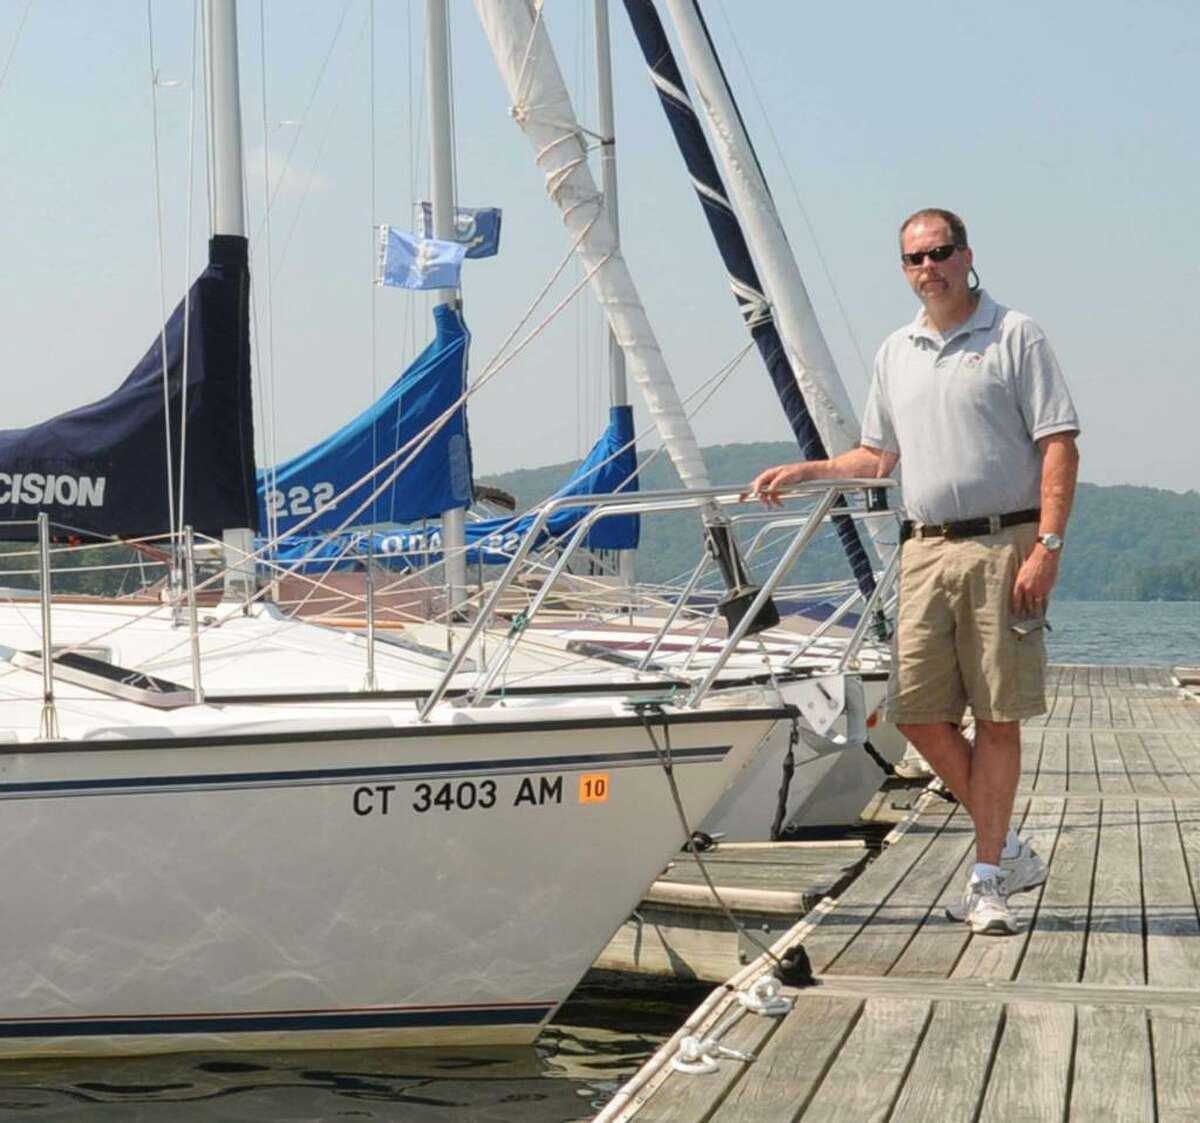 Mitch O'Hara Jr., co-owner of Candlewood East Marina in Brookfield, CT., stand on a dock at the marina on Tuesday August 18, 2009.